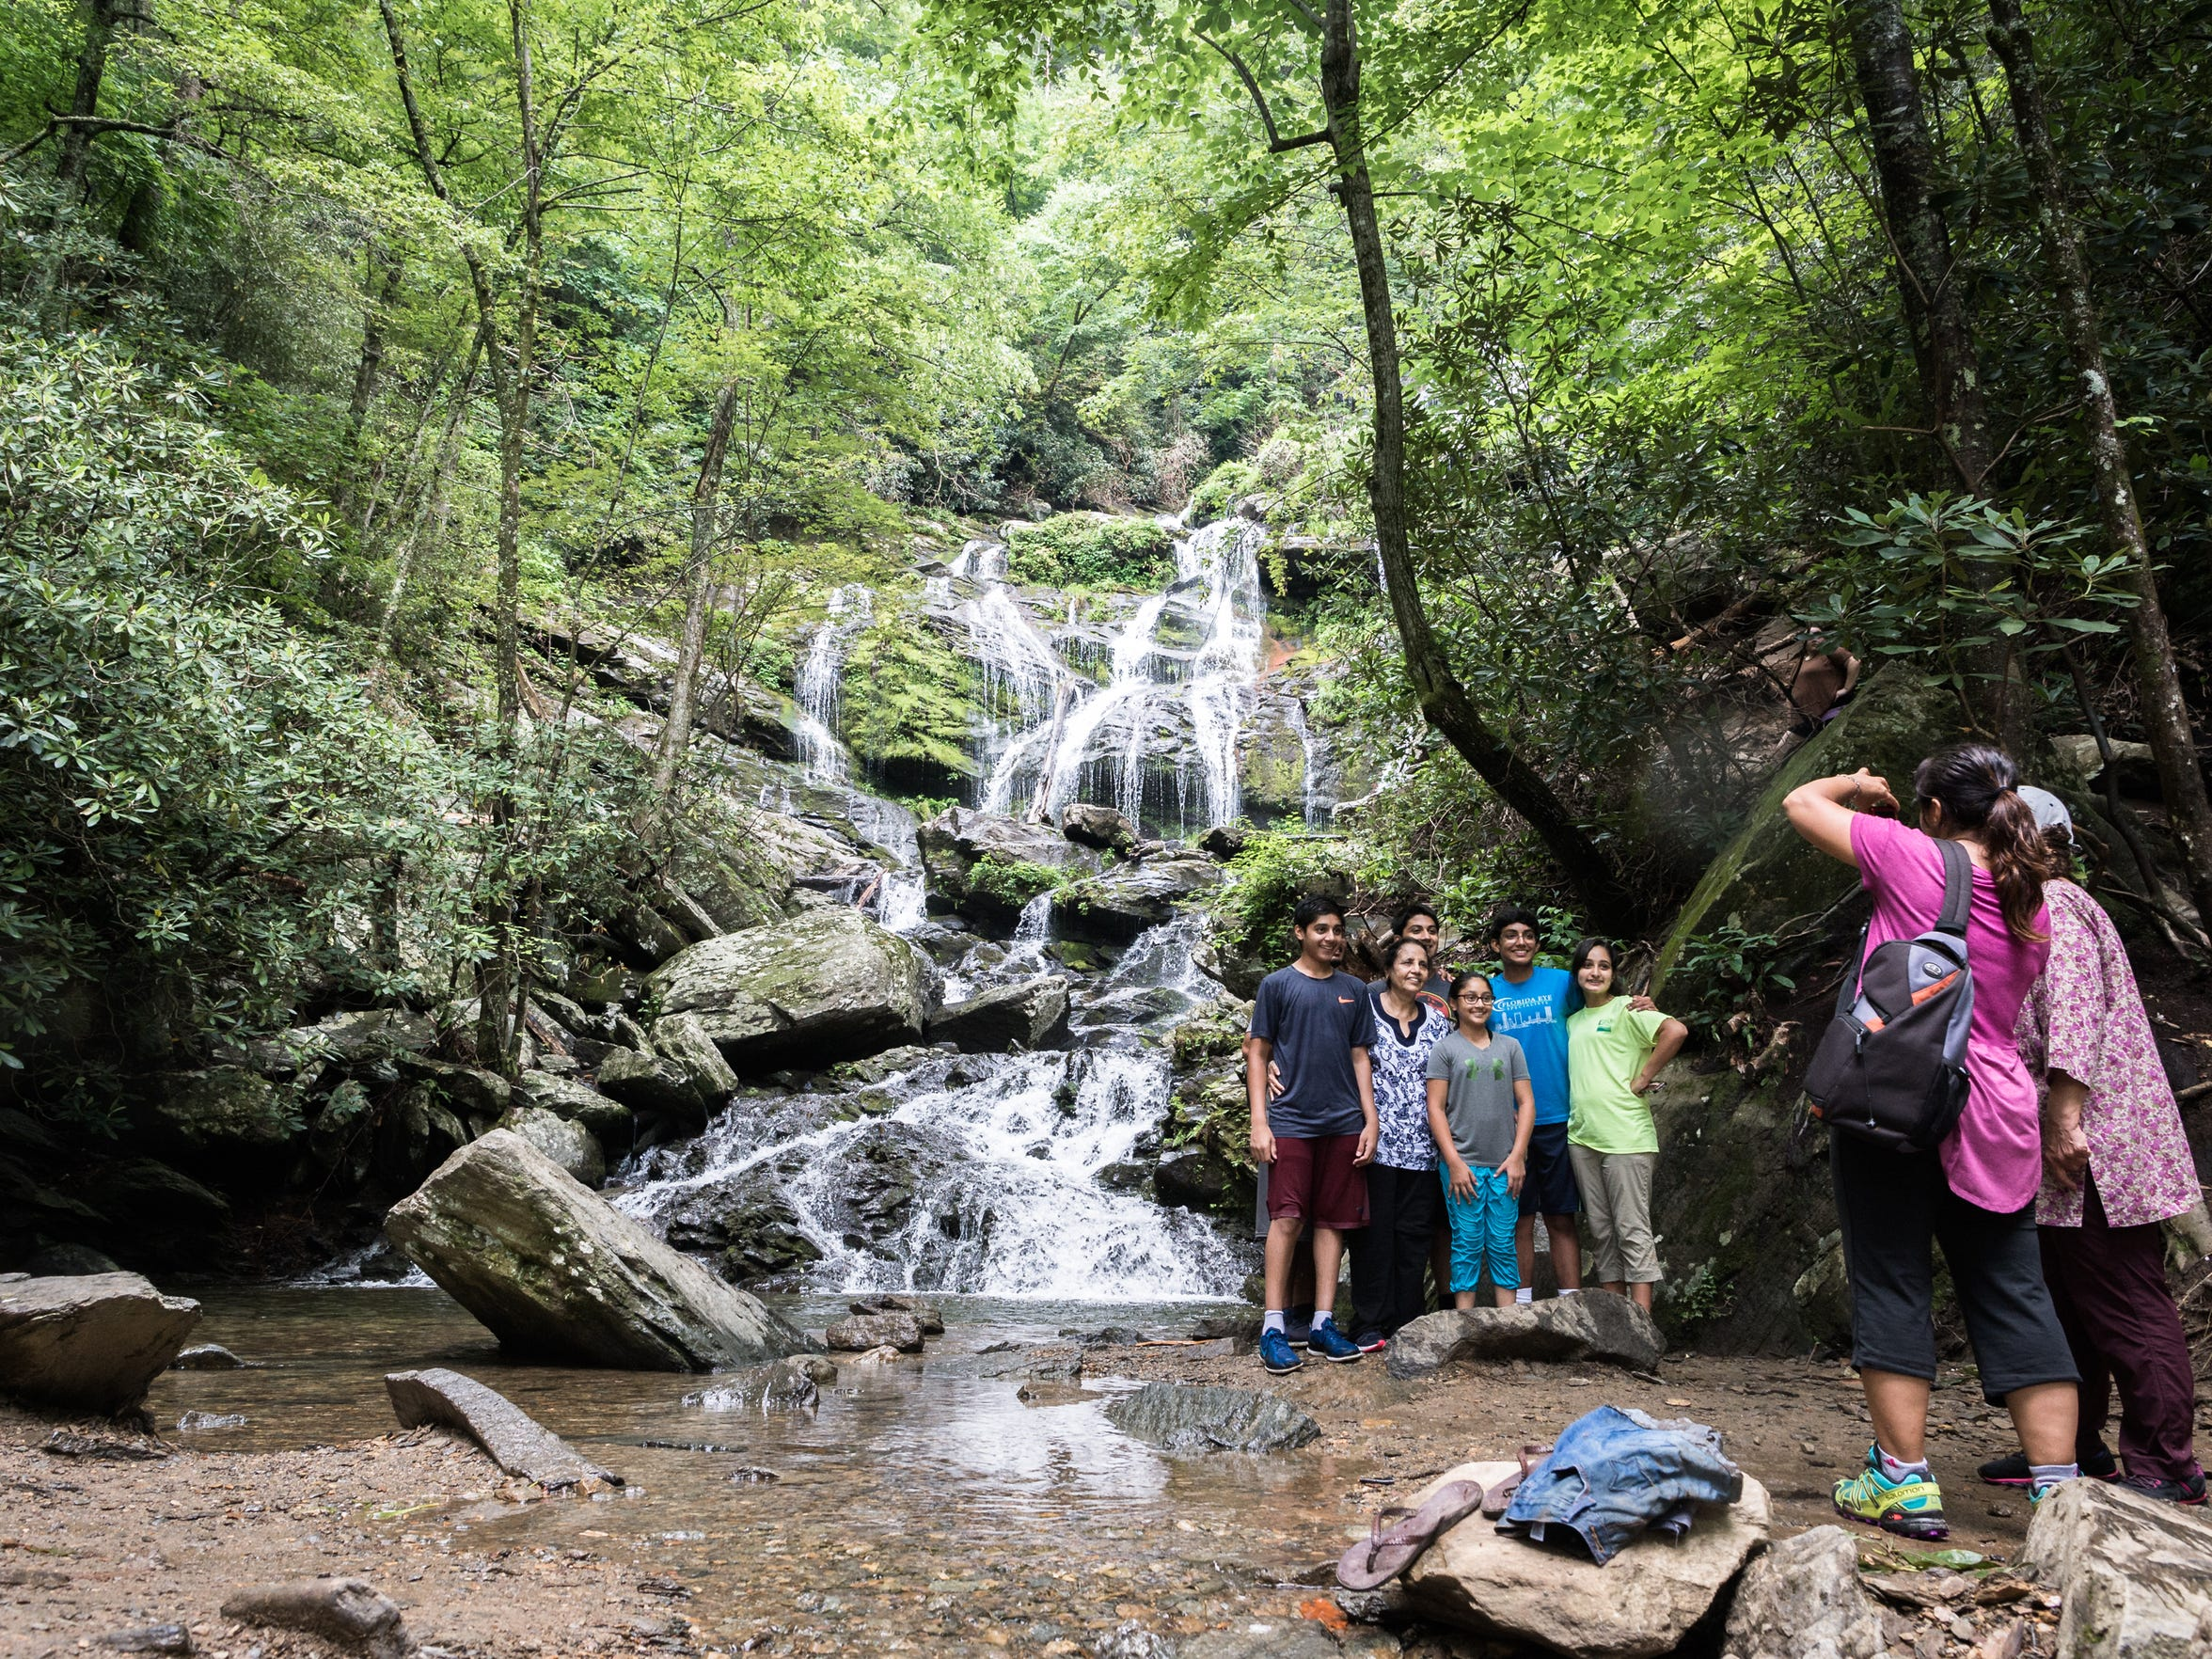 A family poses for a portrait at the base of Catabwa Falls in the Pisgah National Forest in Old Fort, Friday, July 13.